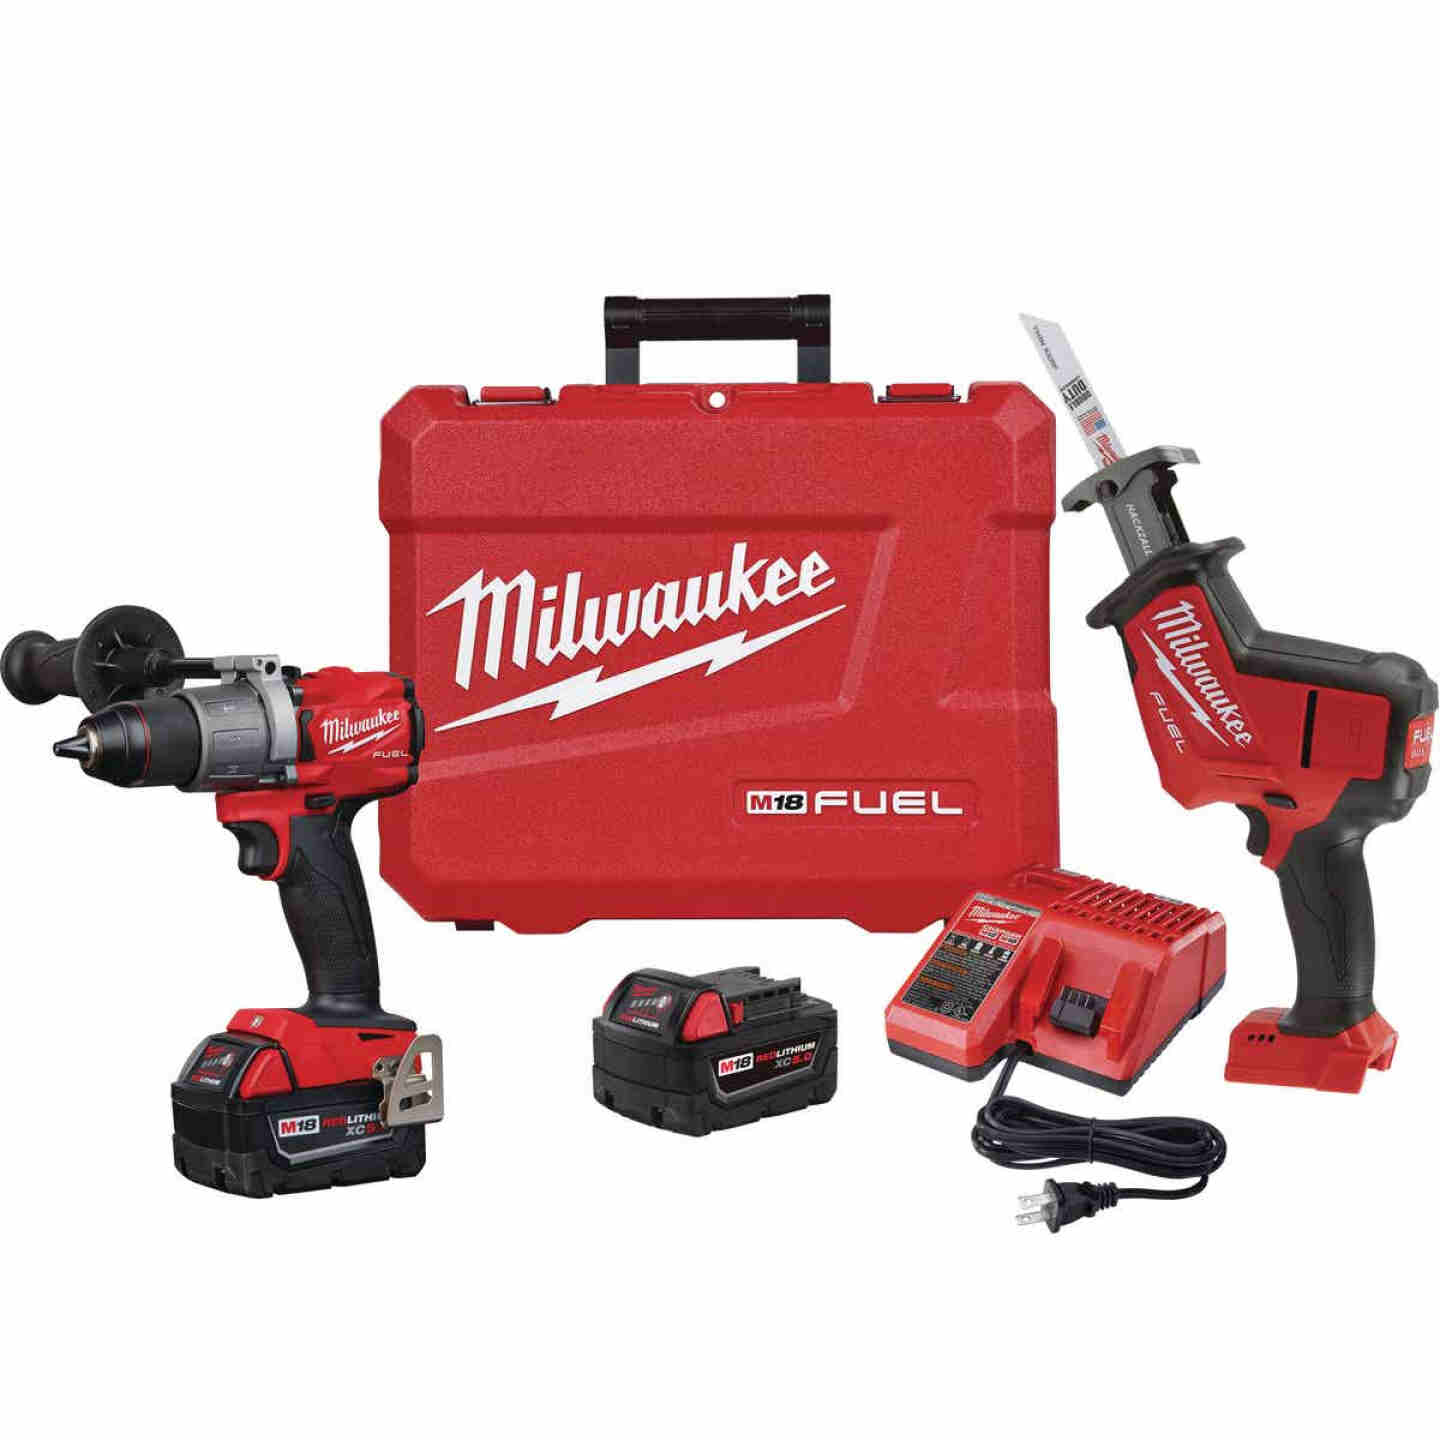 Milwaukee 2-Tool M18 FUEL 18 Volt Lithium-Ion Brushless Hammer Drill/Reciprocating Saw Cordless Tool Combo Kit Image 1